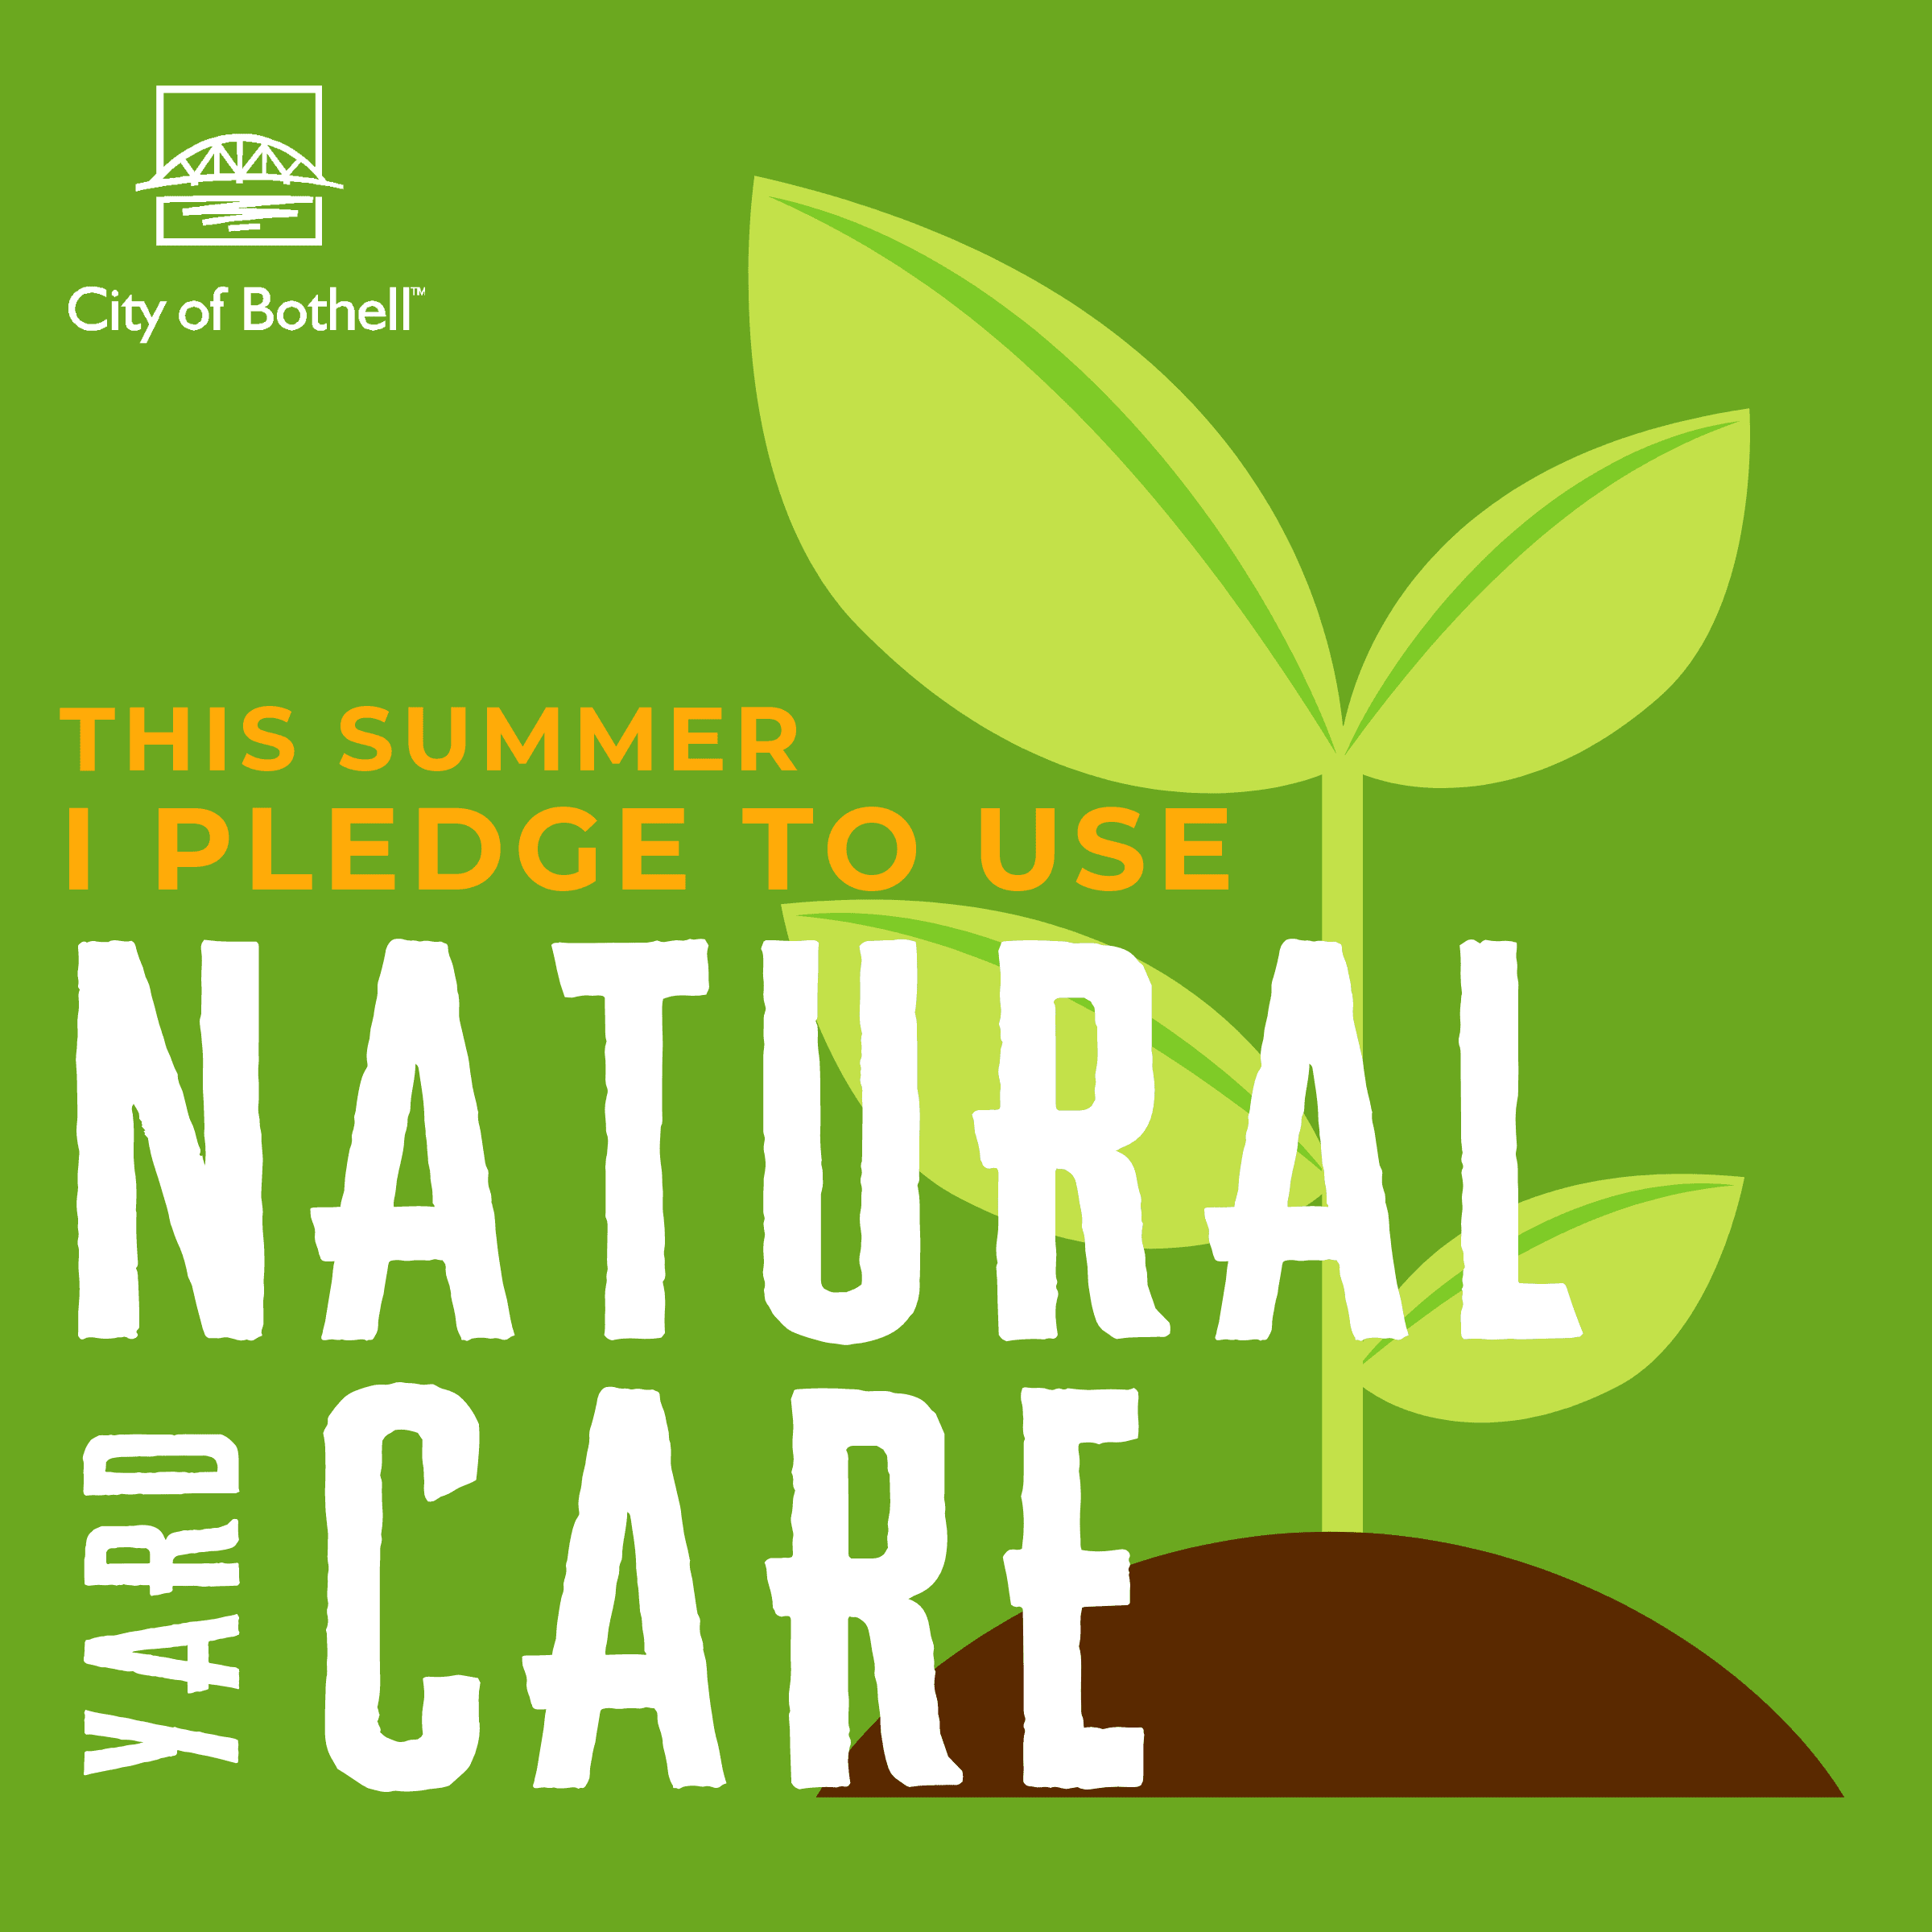 Green Summer Pledge - Natural yard care